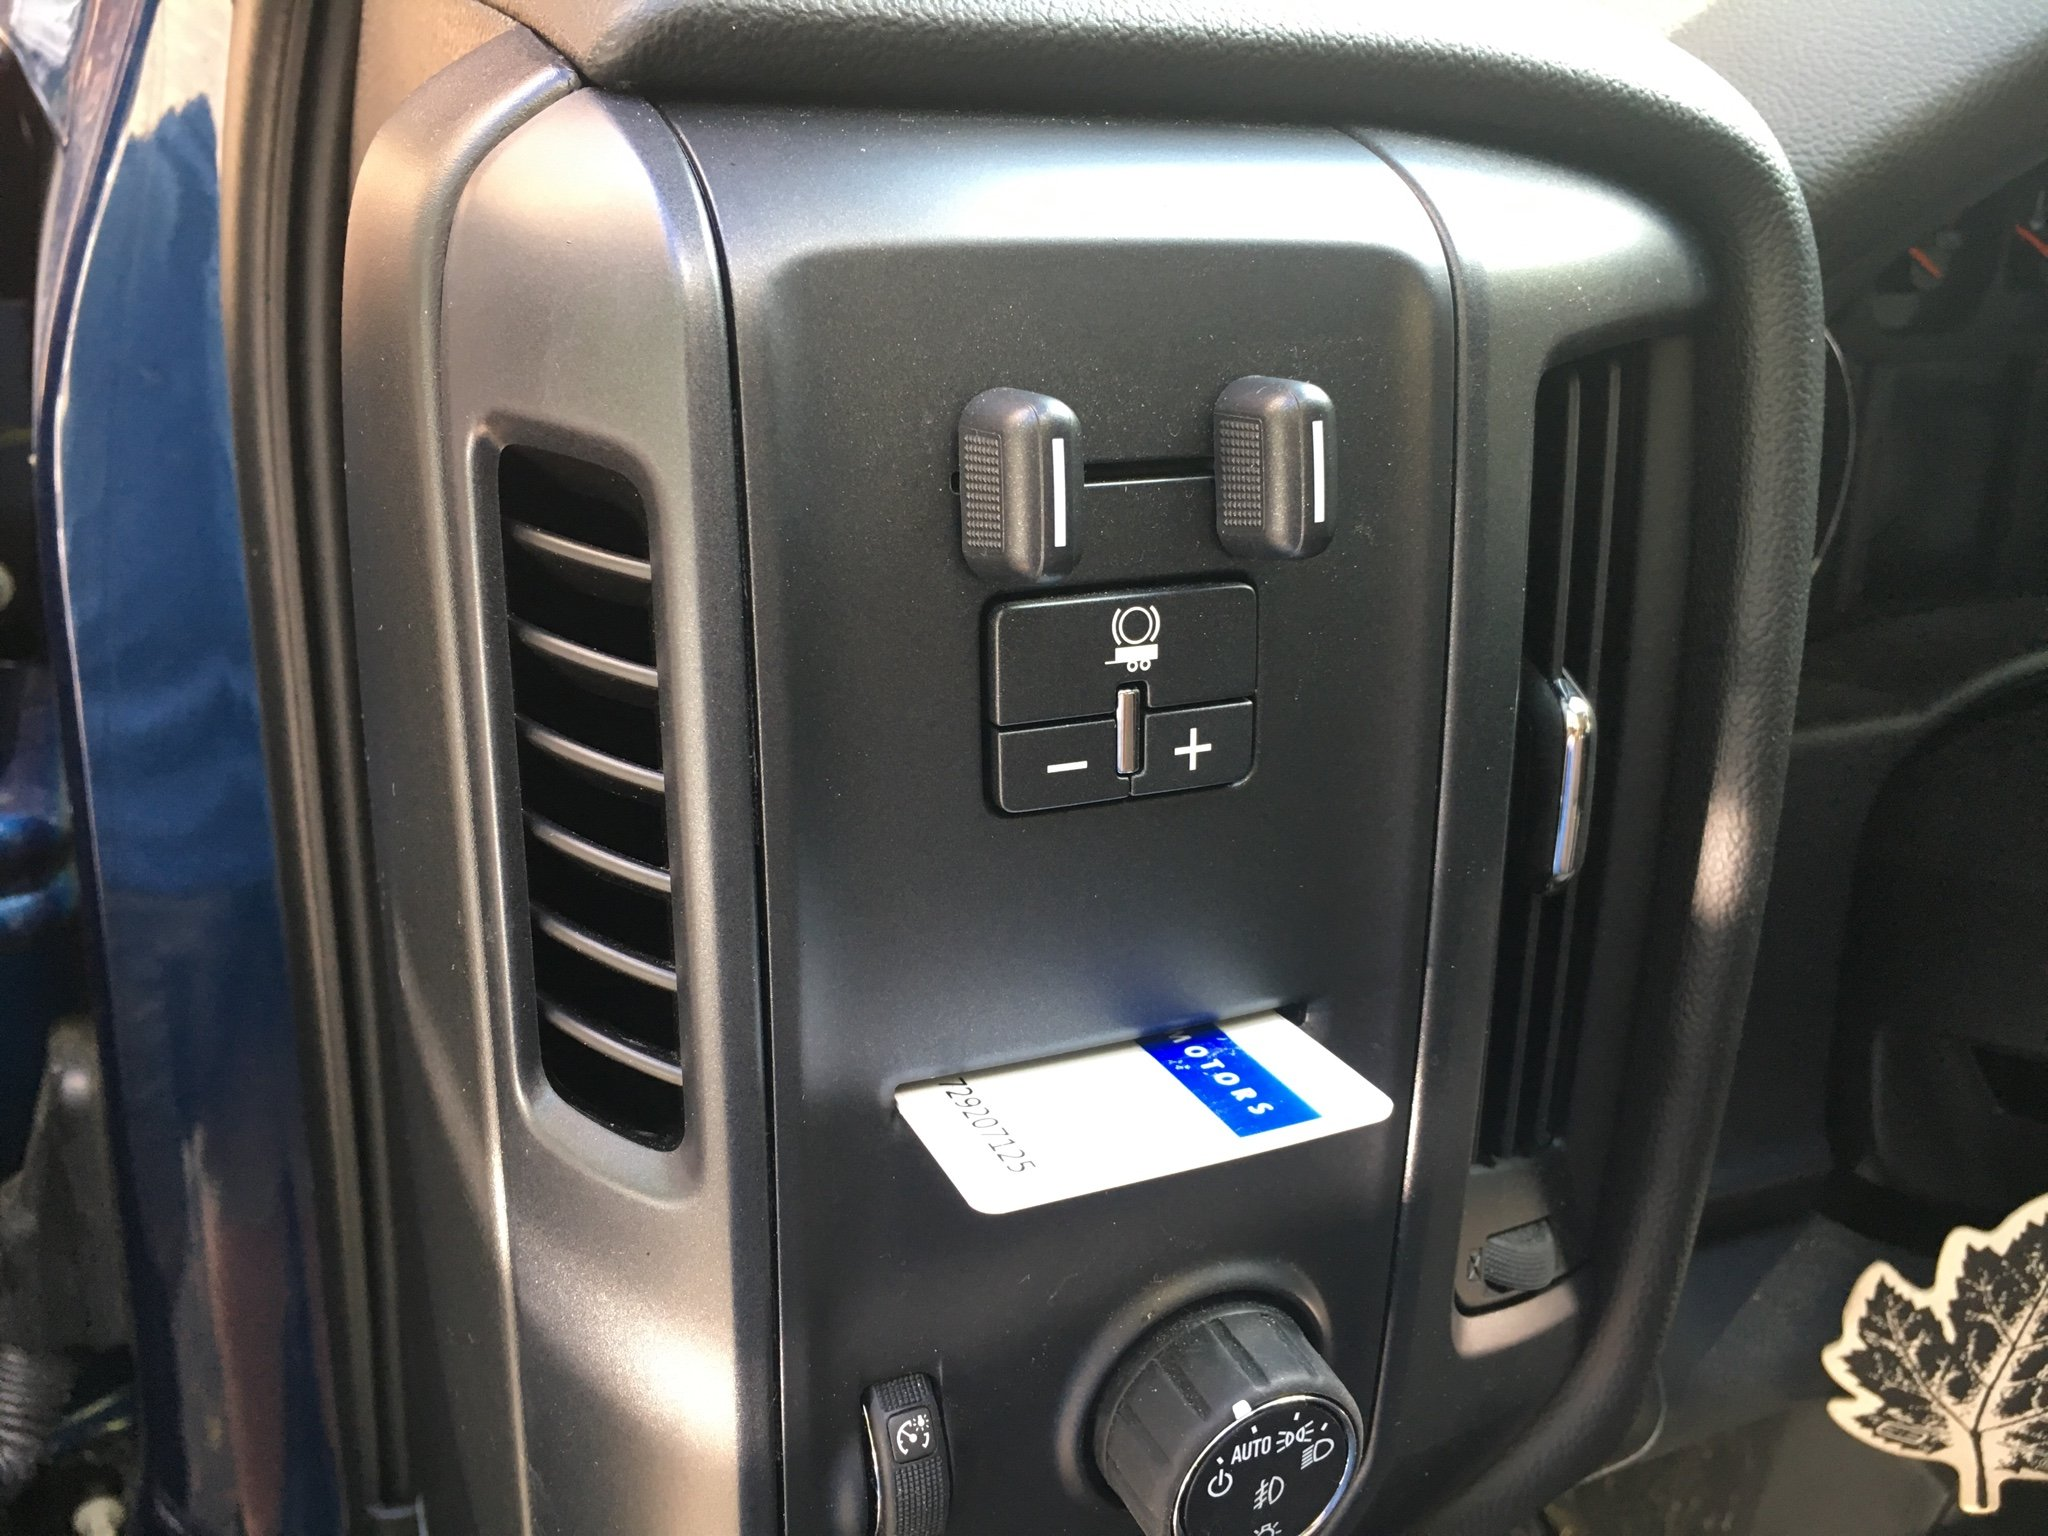 What is this random slot for? - 2014 - 2018 Chevy ...